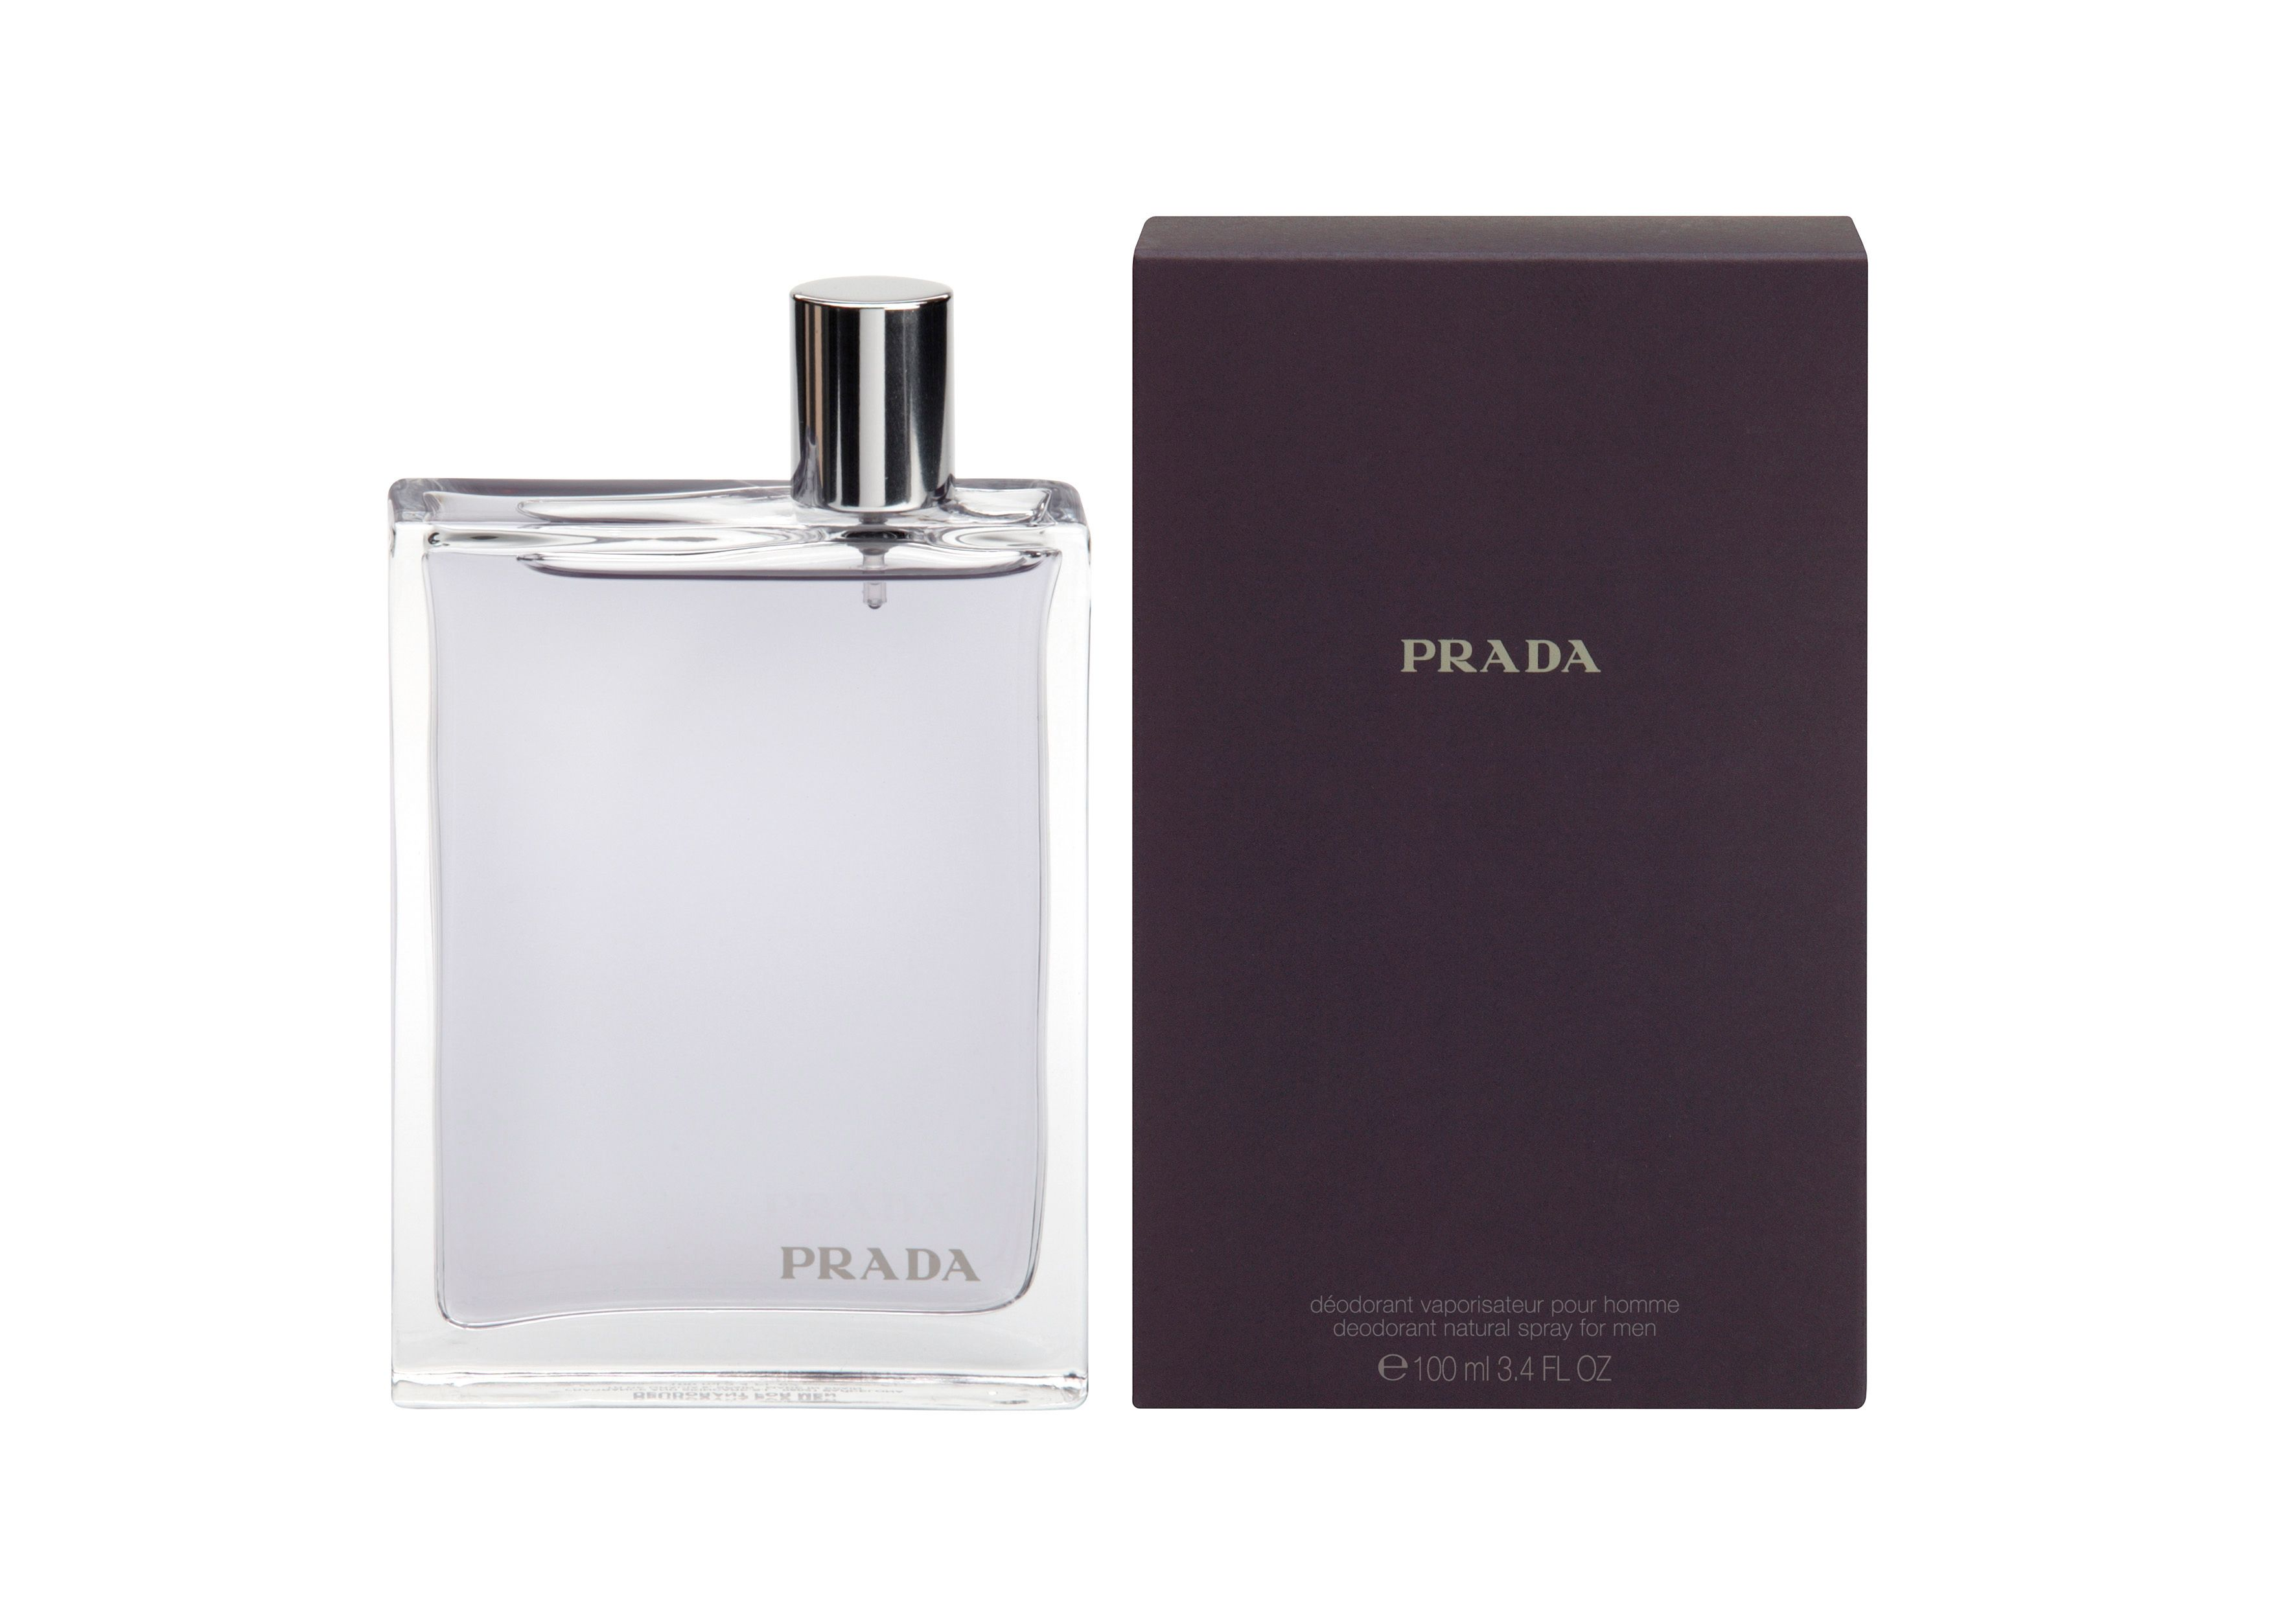 Prada 100ml mens deodorant spray product image